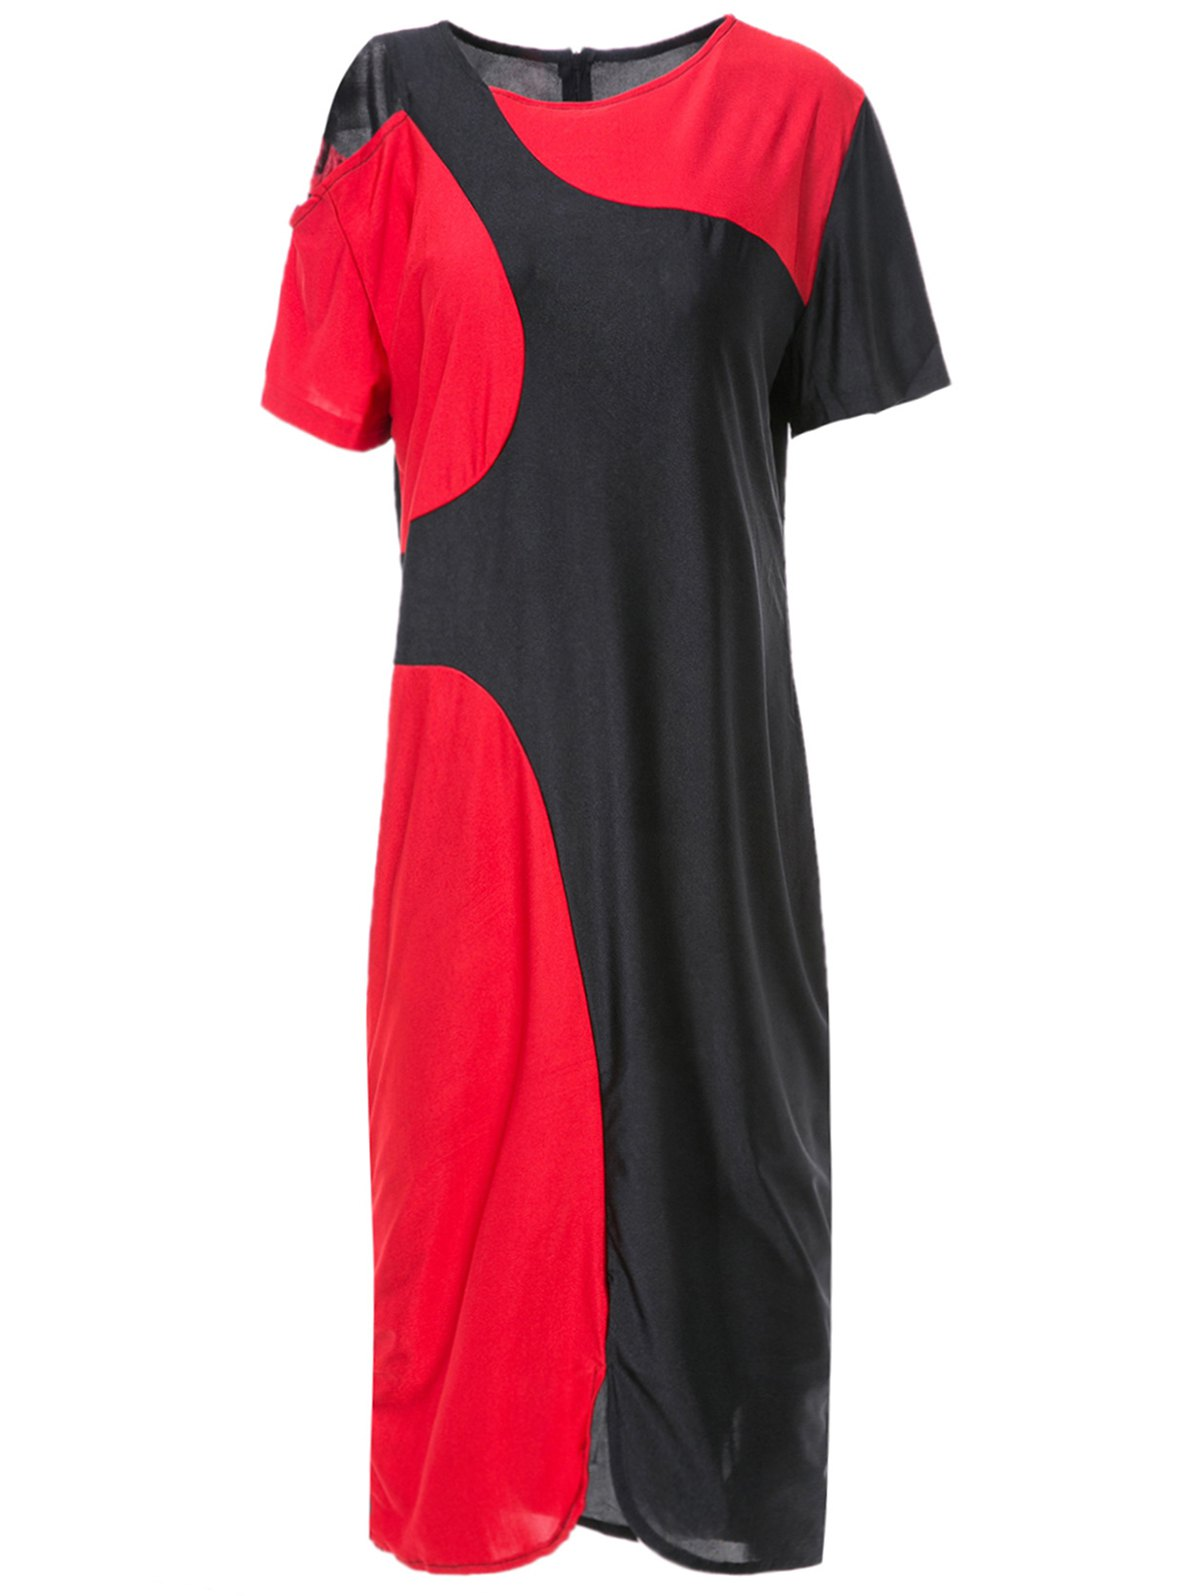 Stylish Round Collar Color Block Cut Out Slit Bodycon Dress For Women - RED/BLACK 2XL